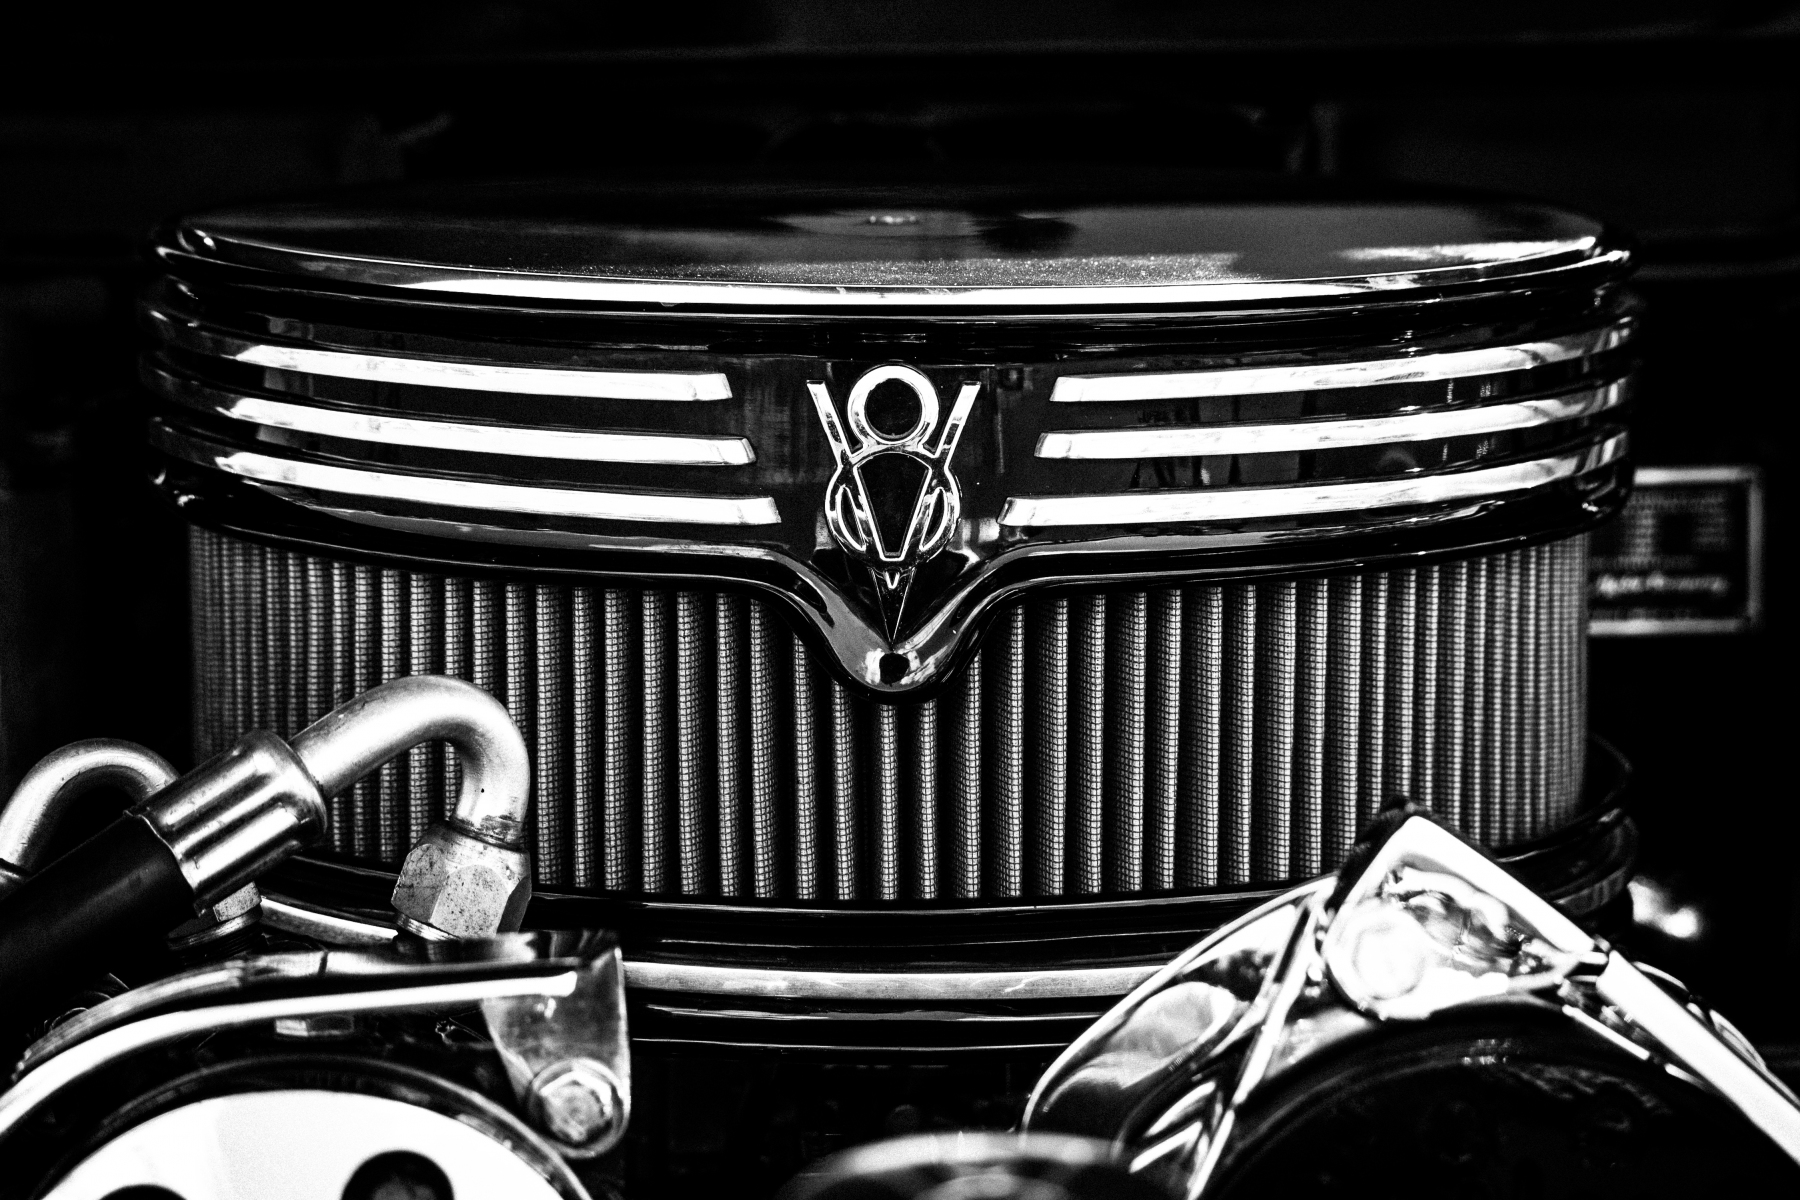 Classic cars are art